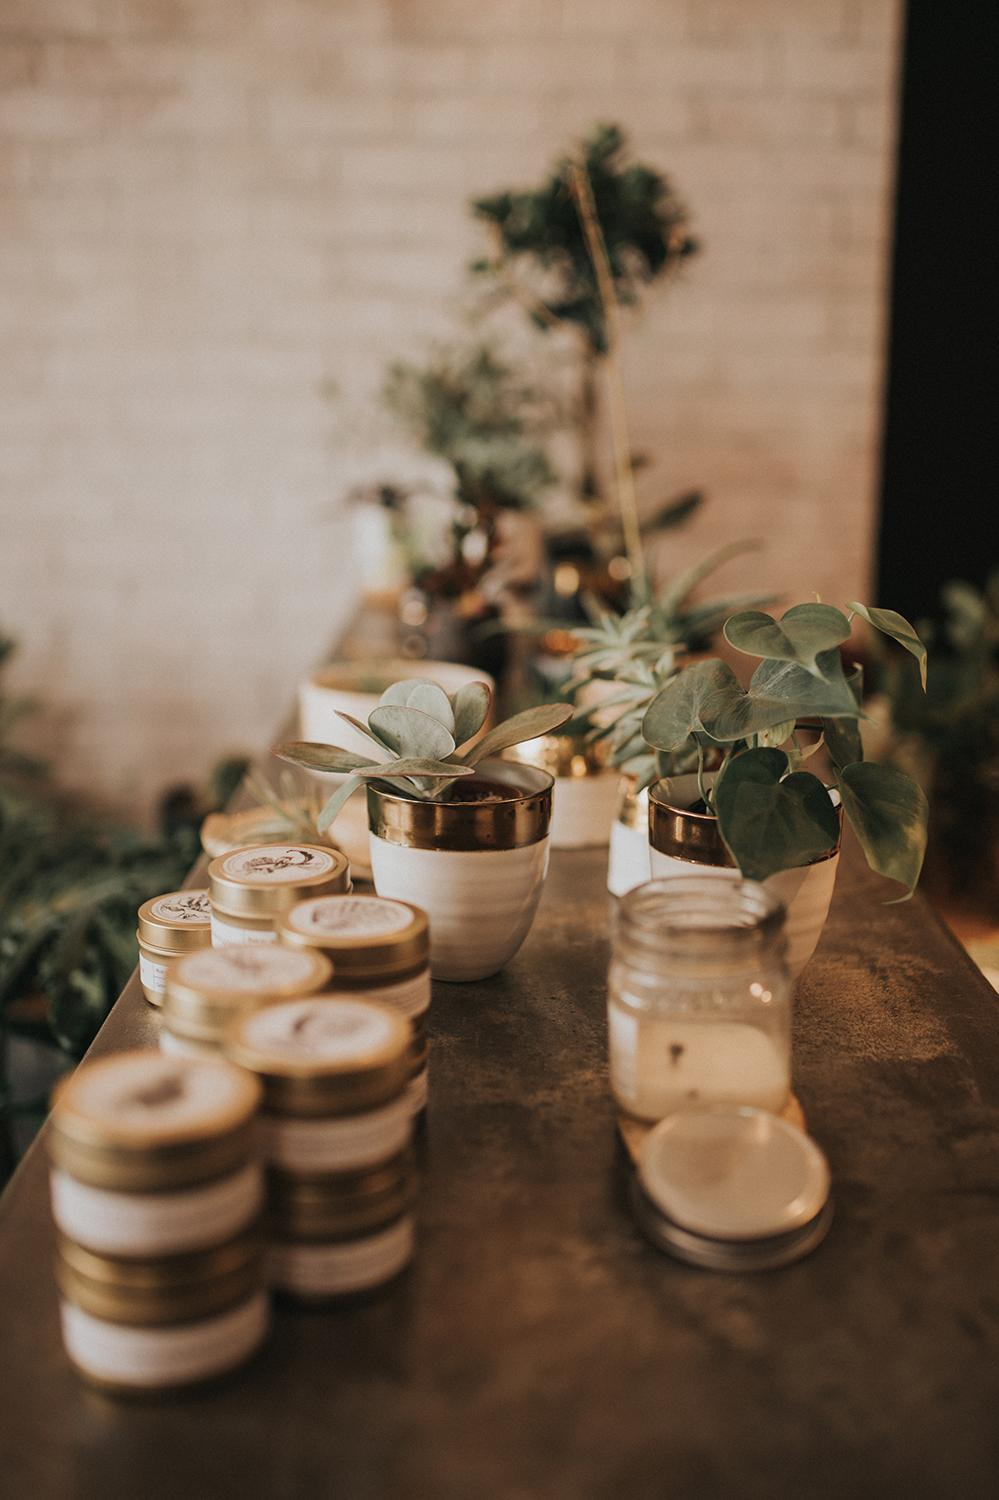 Gia and the Blooms is an Over-the-Rhine floral design shop. It creates elegant, carefully-curated, and affordable arrangements with a fresh, from-the-garden feel. ADDRESS: 114 E 13th St, Cincinnati, OH 45202 / Image: Brianna Long // Published: 2.3.17